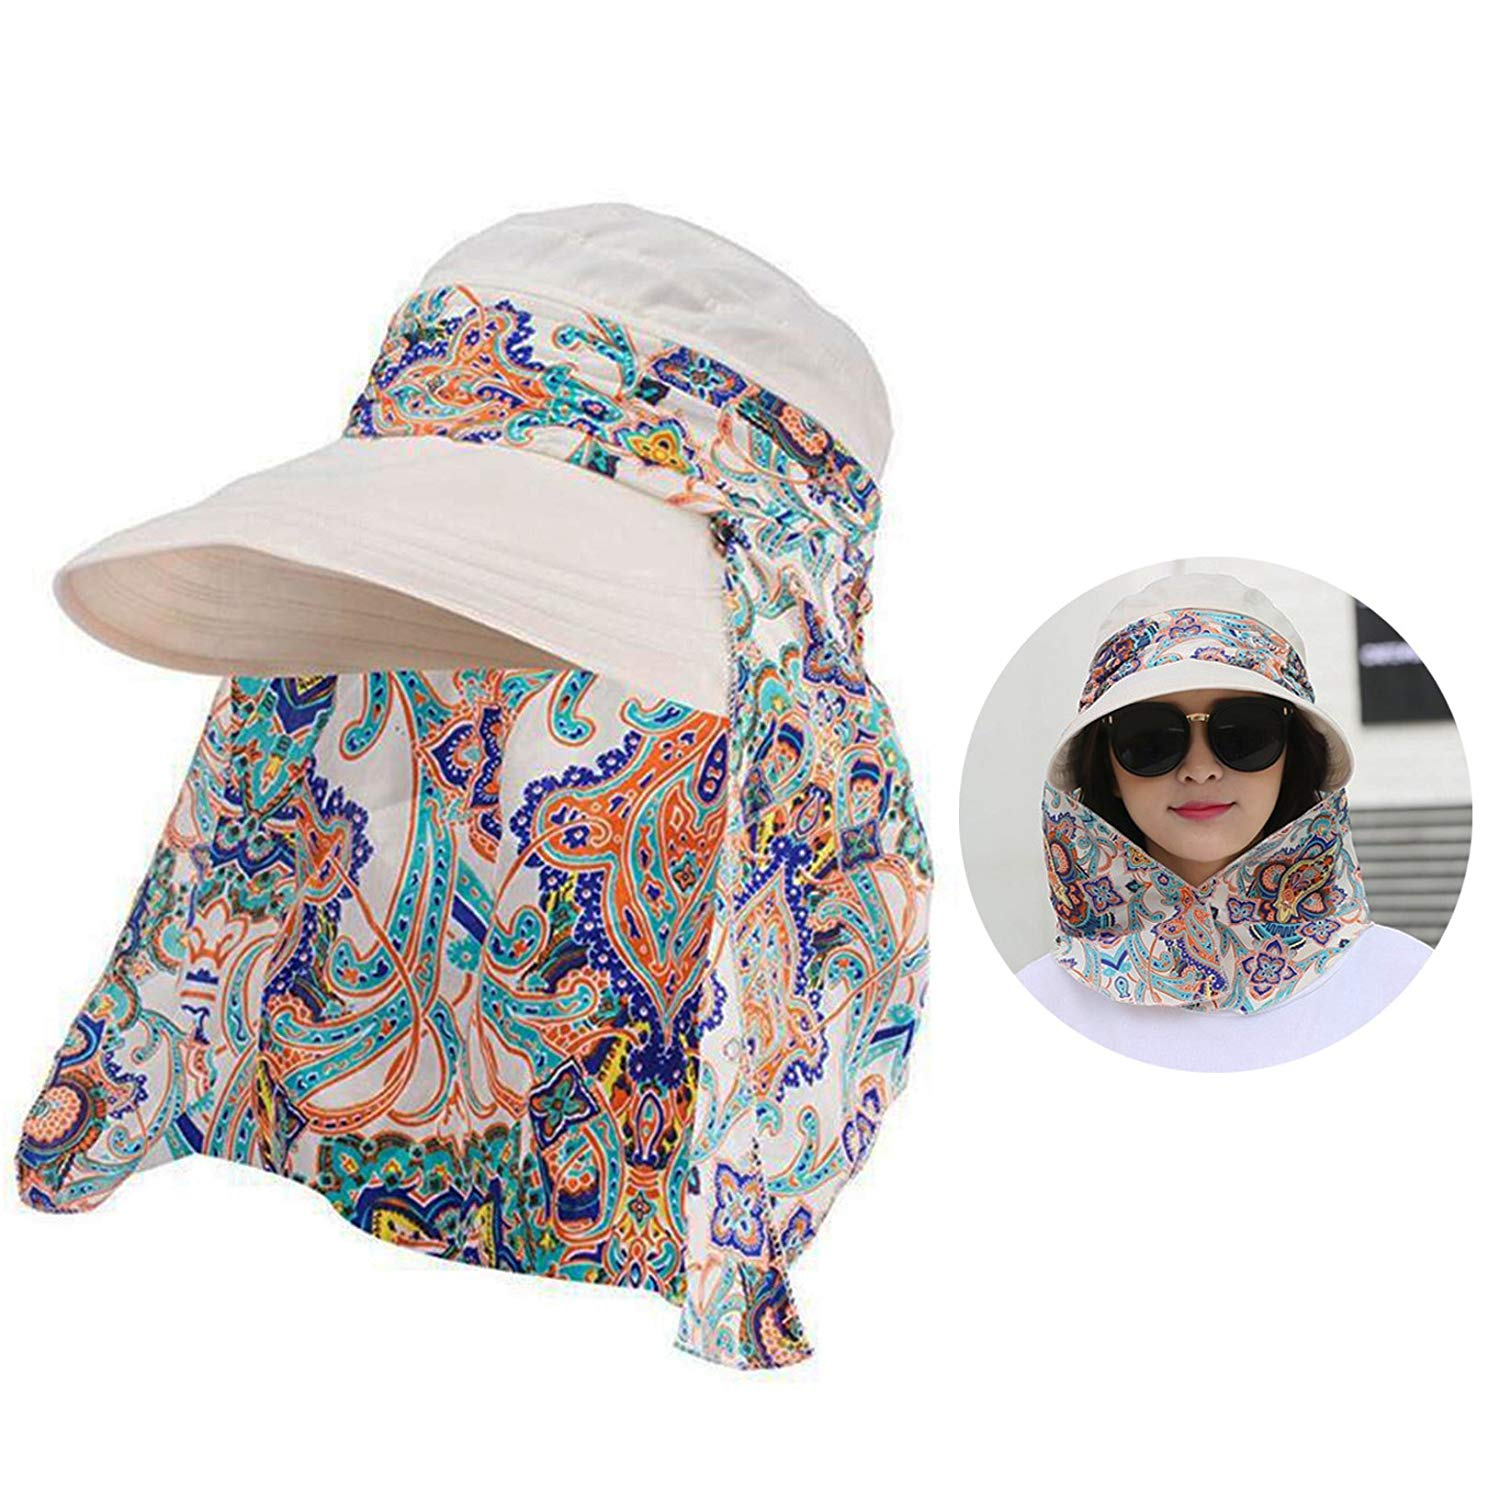 81cdad3f7b5 Get Quotations · Originalidad Visor Hats Wide Brim Cap UV Protection Summer Sun  Hats with Neck Face Flap Cover for